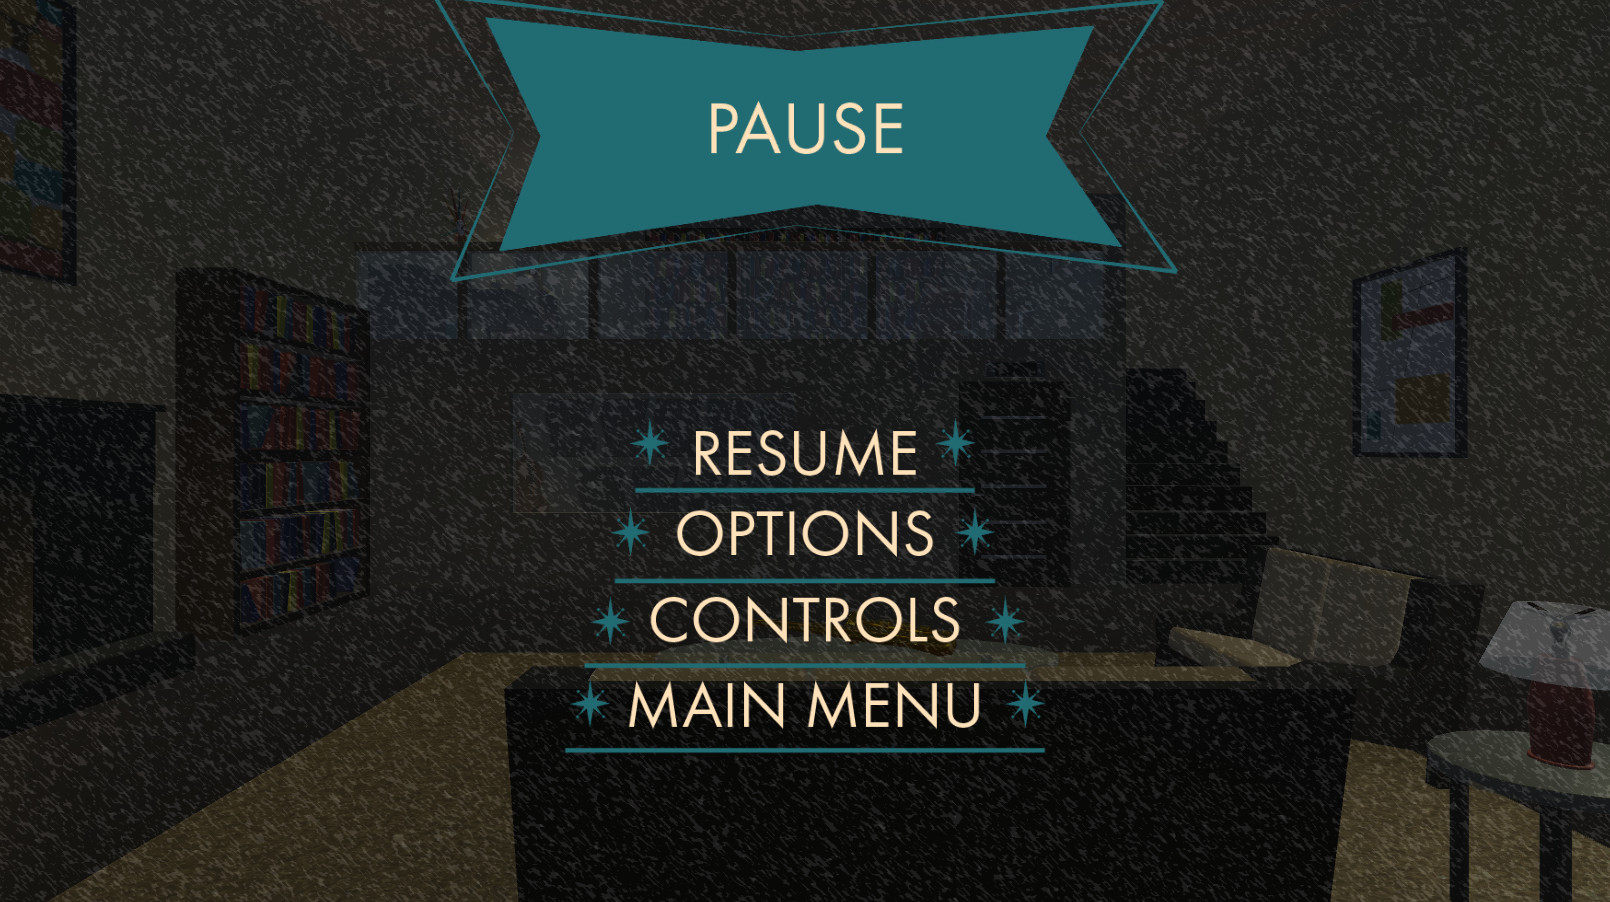 Pause can be brought up in the hub world or during the mini games. There is an overlay on the game to contrast with the buttons. From Pause, the player can Resume, go to the Options Menu, check the Controls, or return to Main Menu.